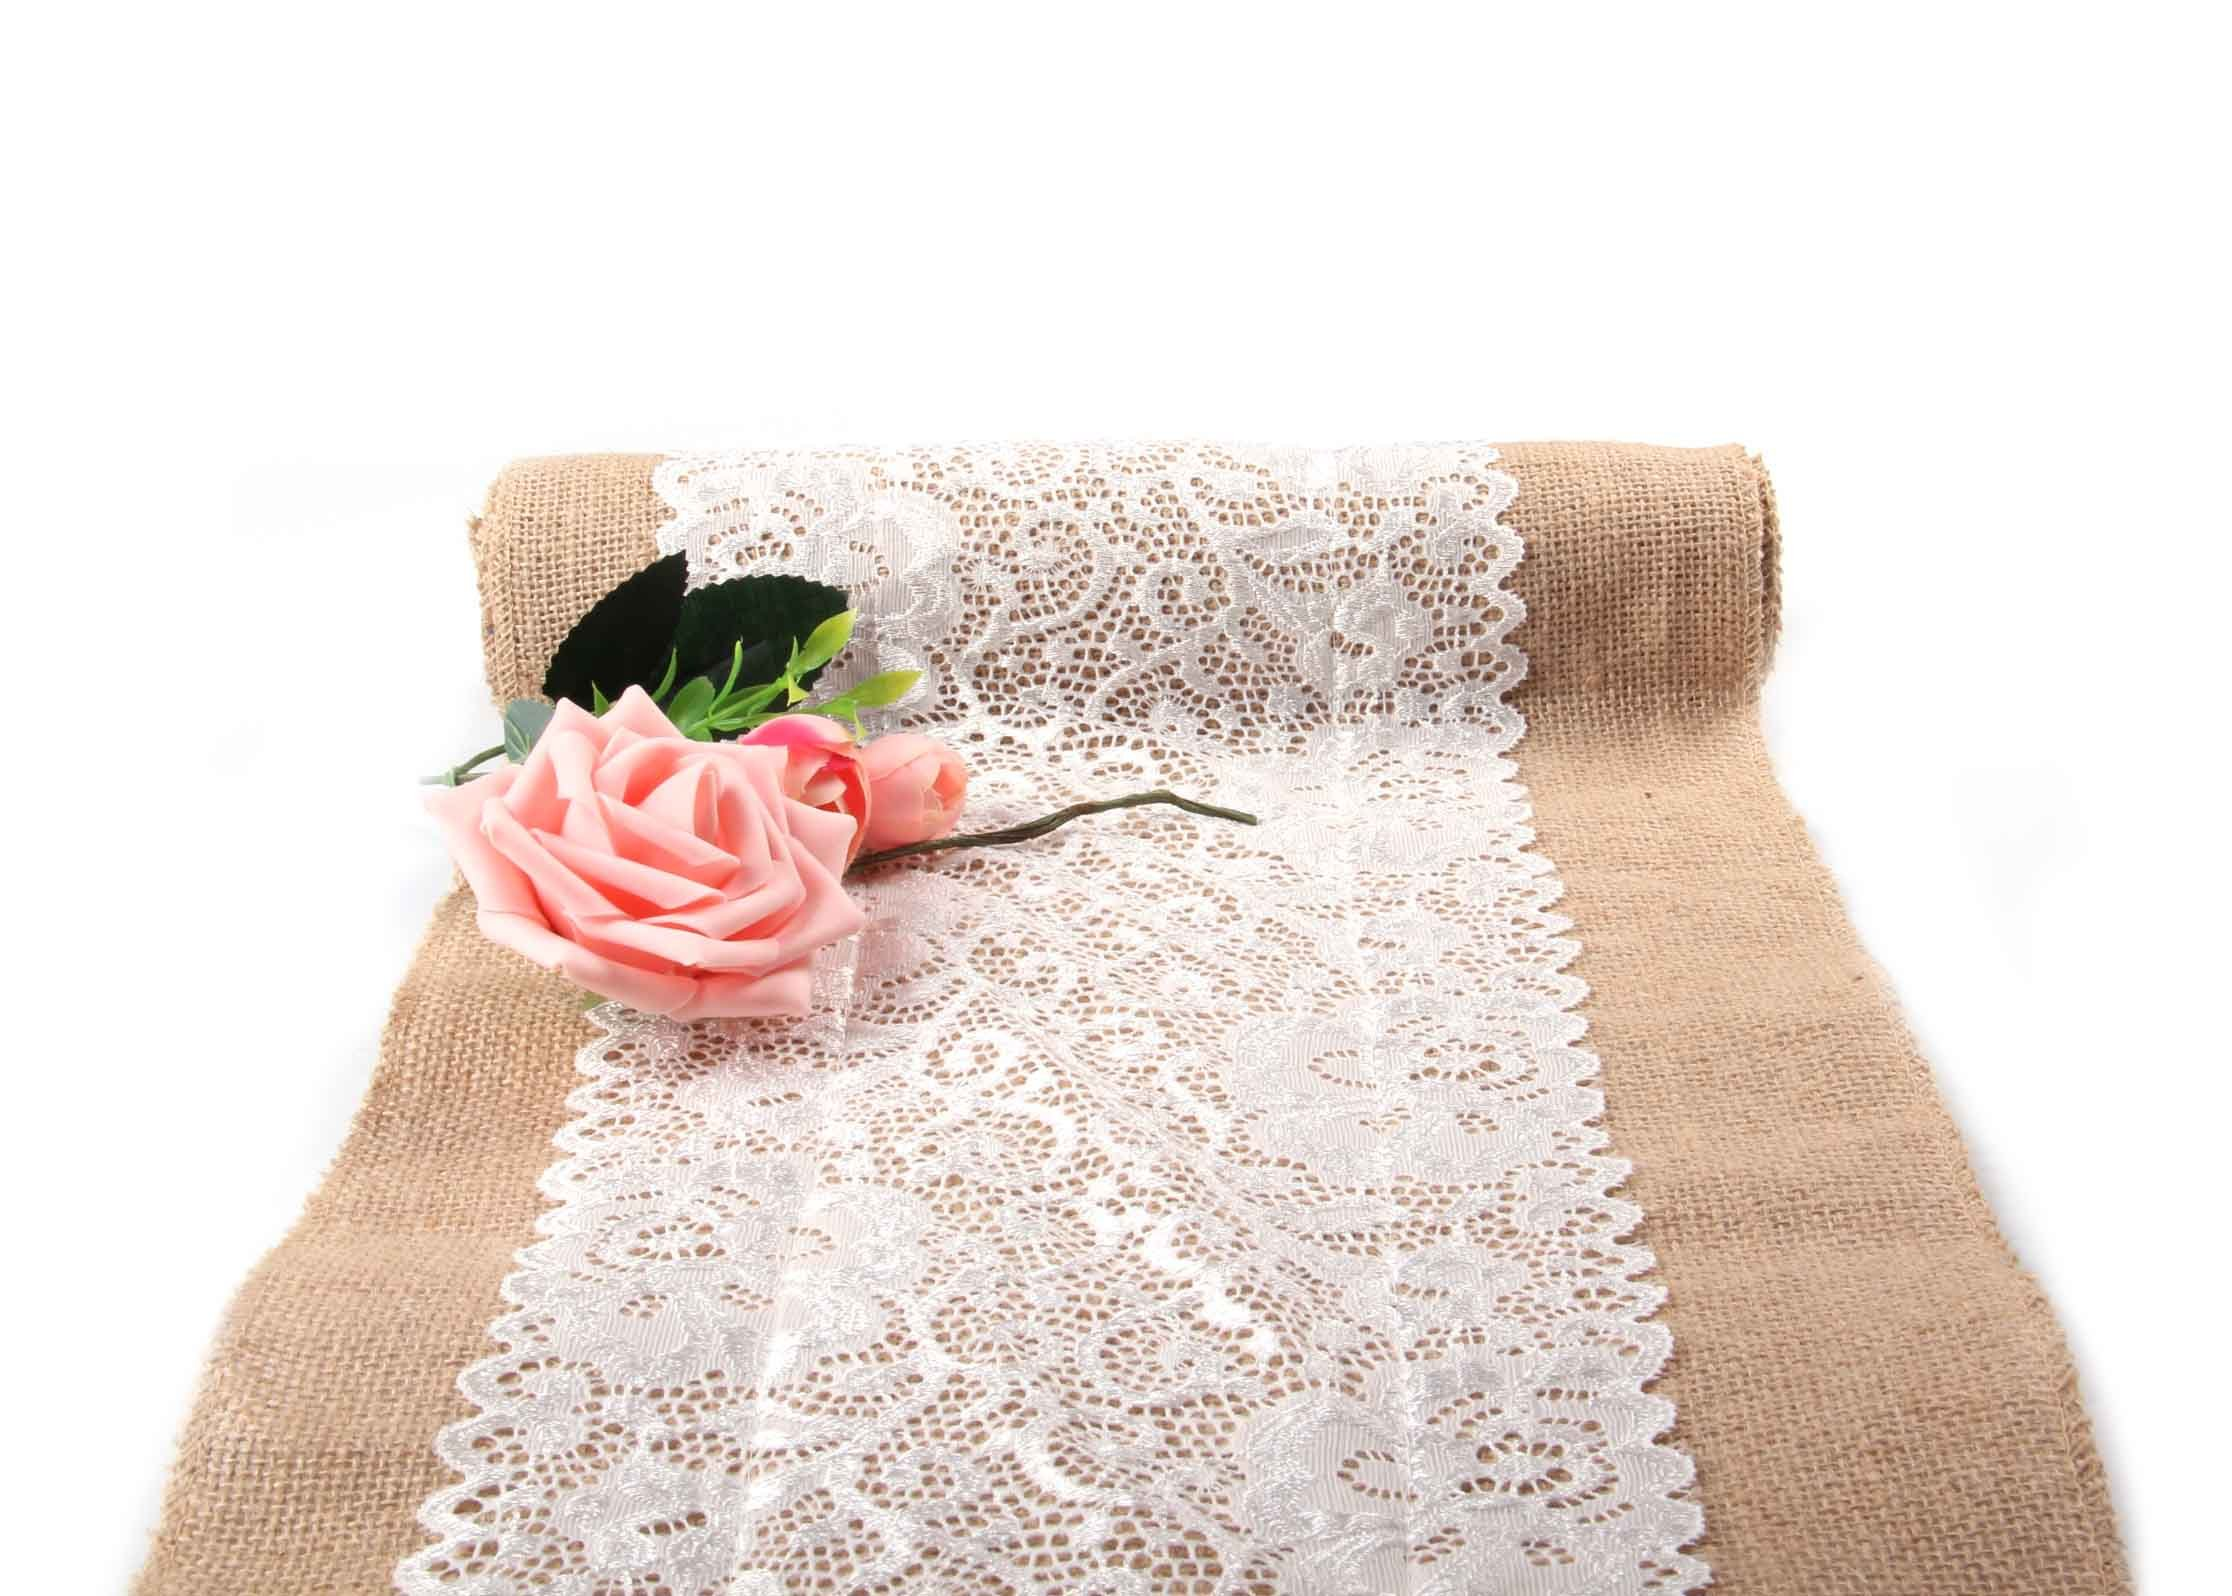 Junxia Burlap Table Runner with White Lace for Wedding Festival Event Hessian Table Decoration 4packs(Runner 2) - Color:flaxen,white Material: Burlap&Lace.Middle lace design. Size:width is 30 cm,length is 180 cm.4packs - table-runners, kitchen-dining-room-table-linens, kitchen-dining-room - 81j%2BEaWeHIL -